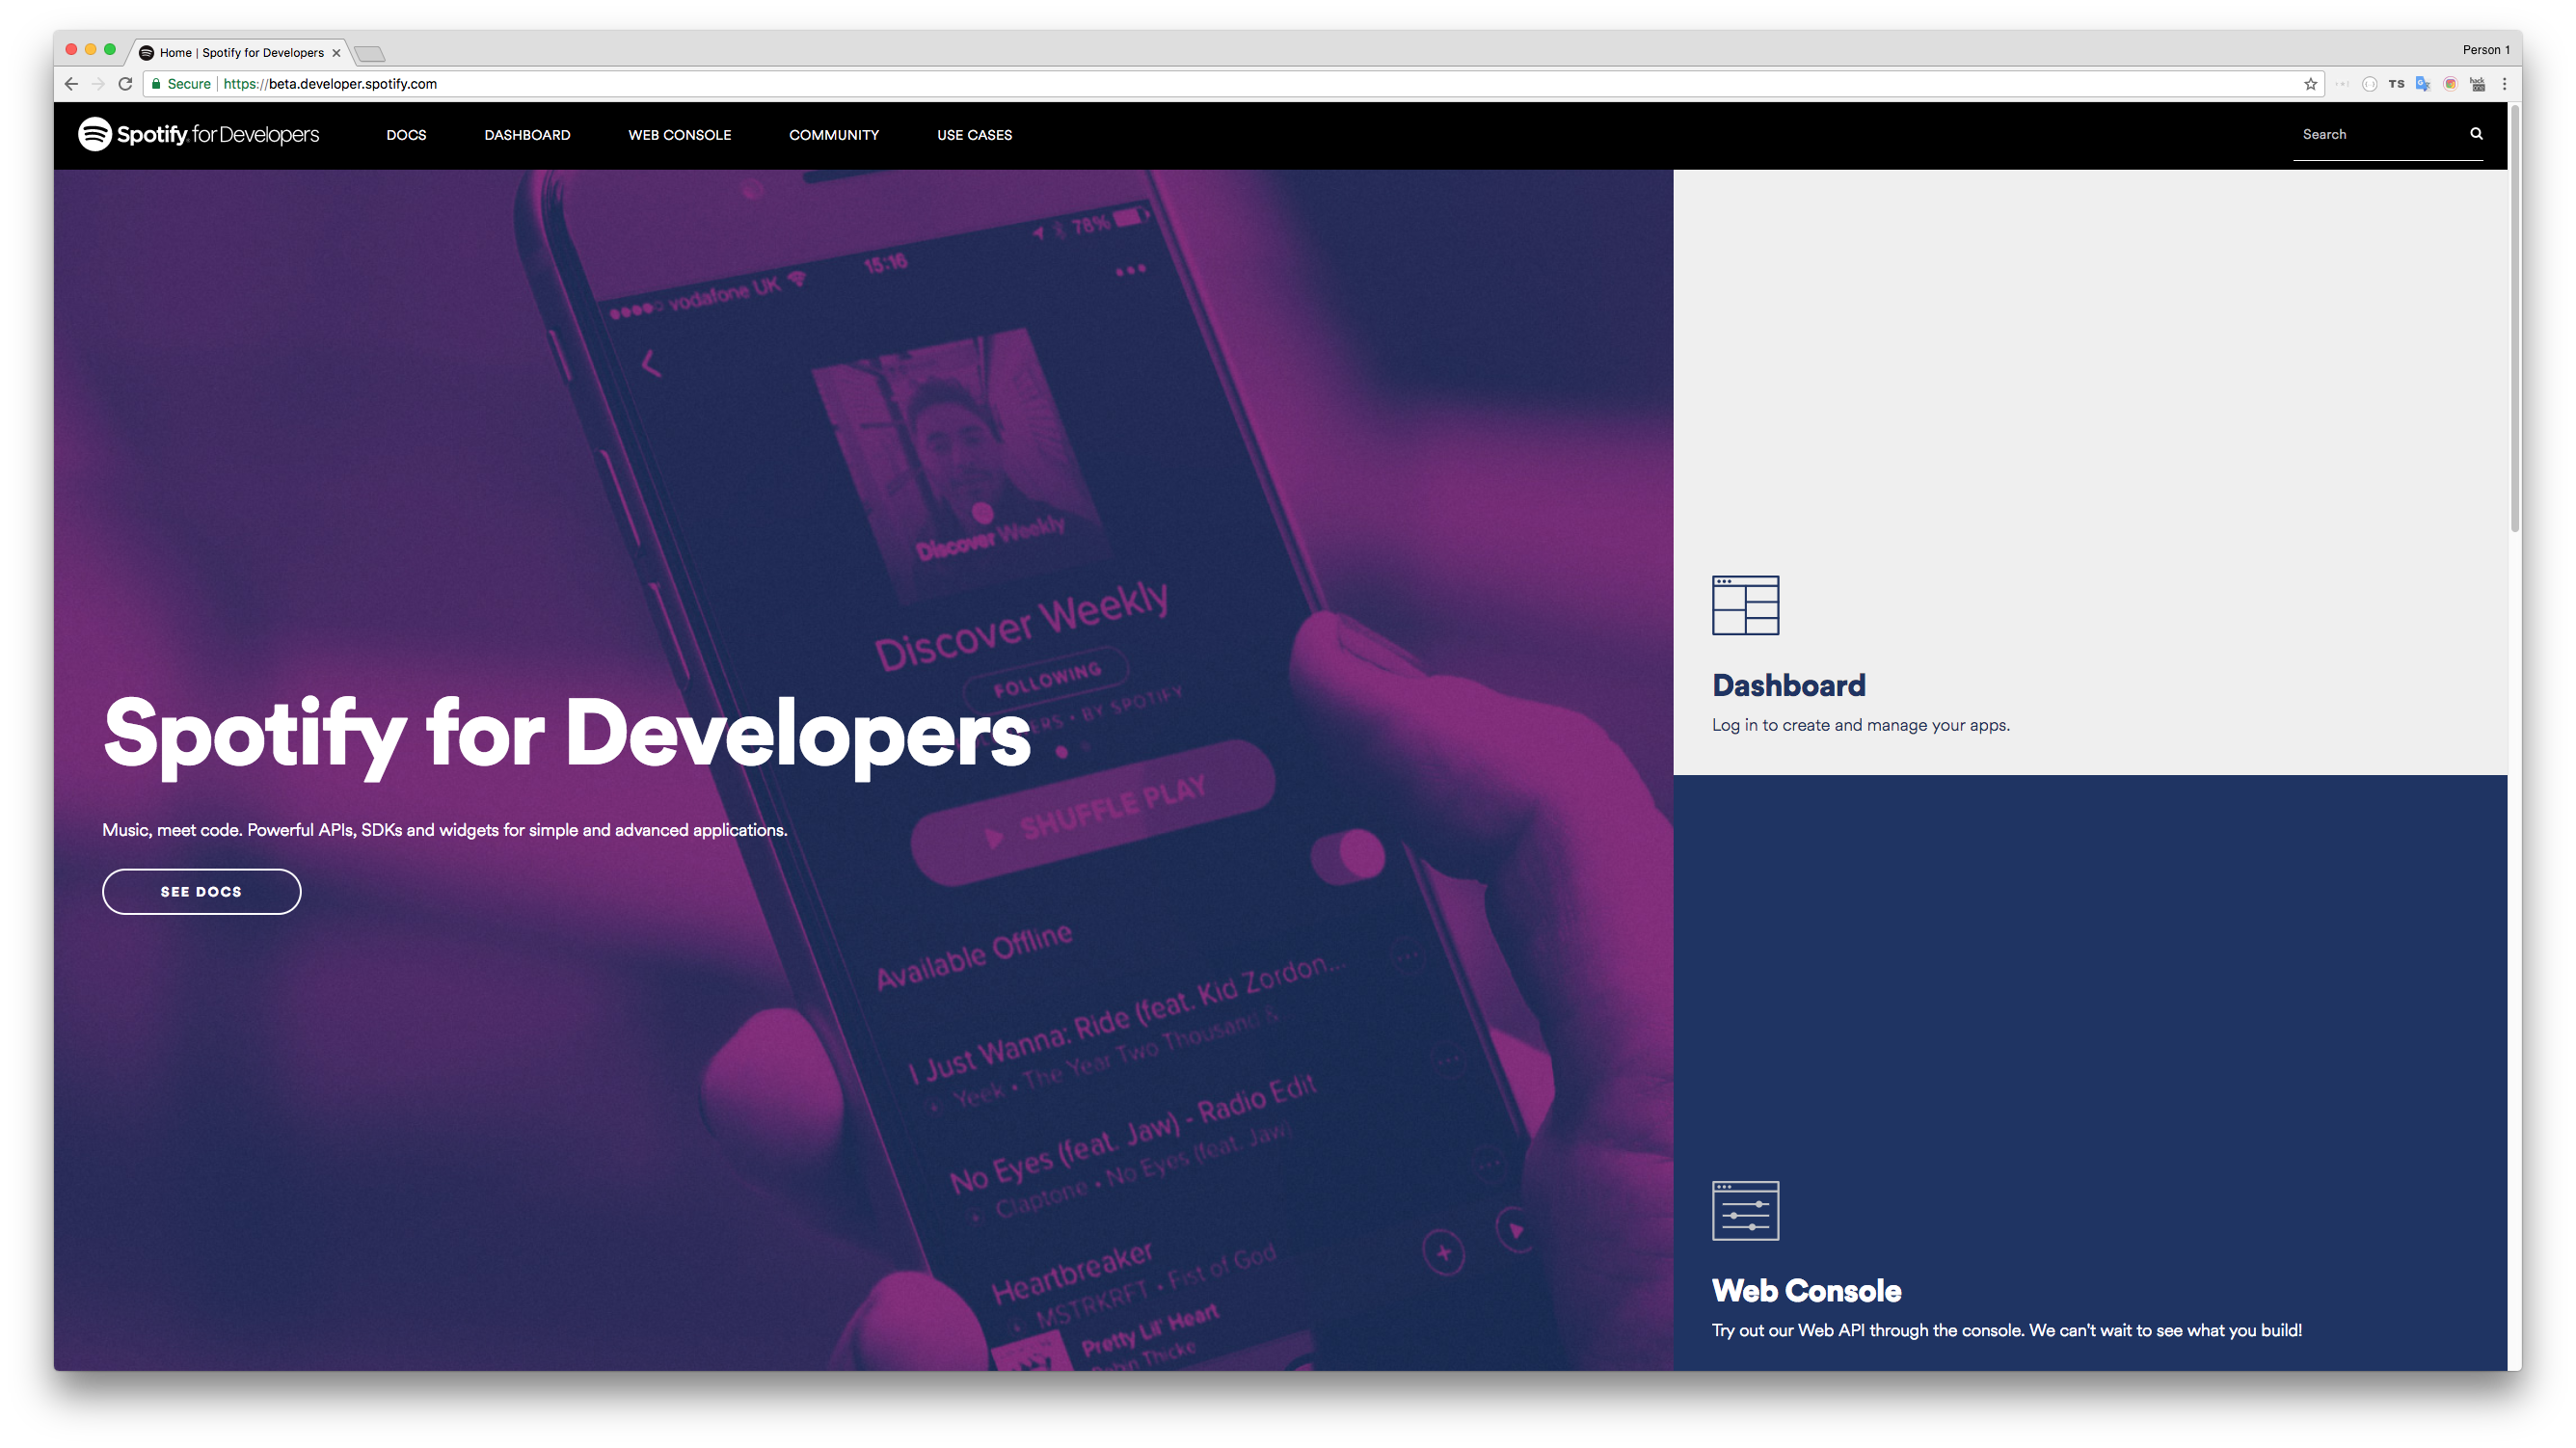 Spotify for Developers homepage